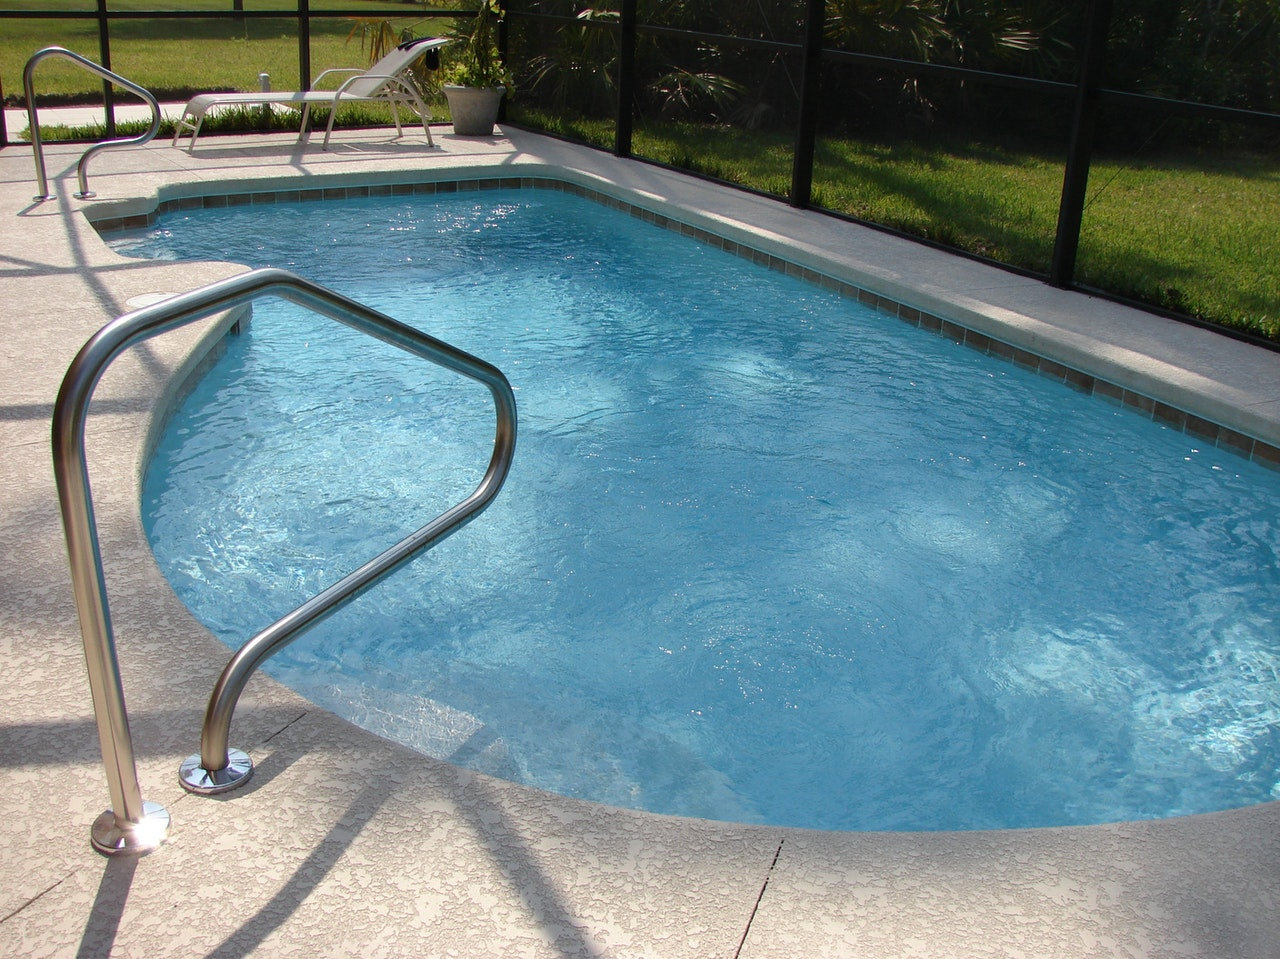 Propane for your pool